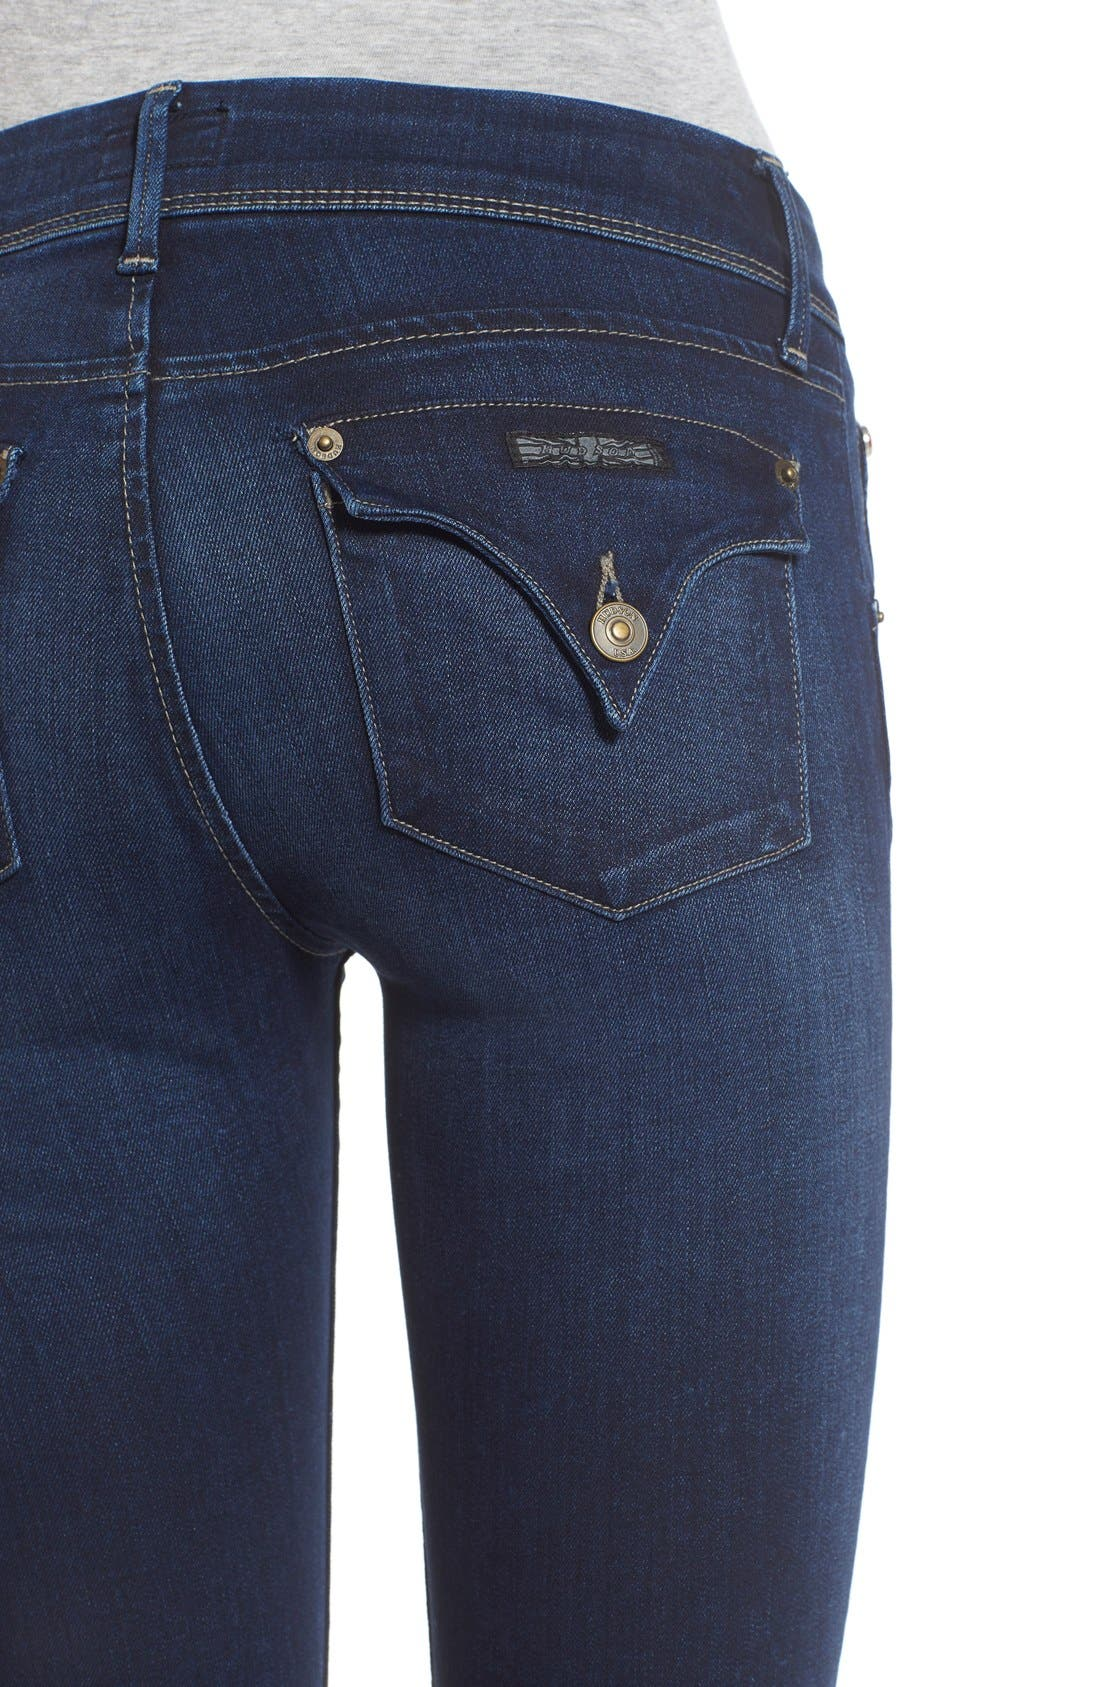 'Elysian - Collin' Mid Rise Skinny Jeans,                             Alternate thumbnail 4, color,                             Crest Falls